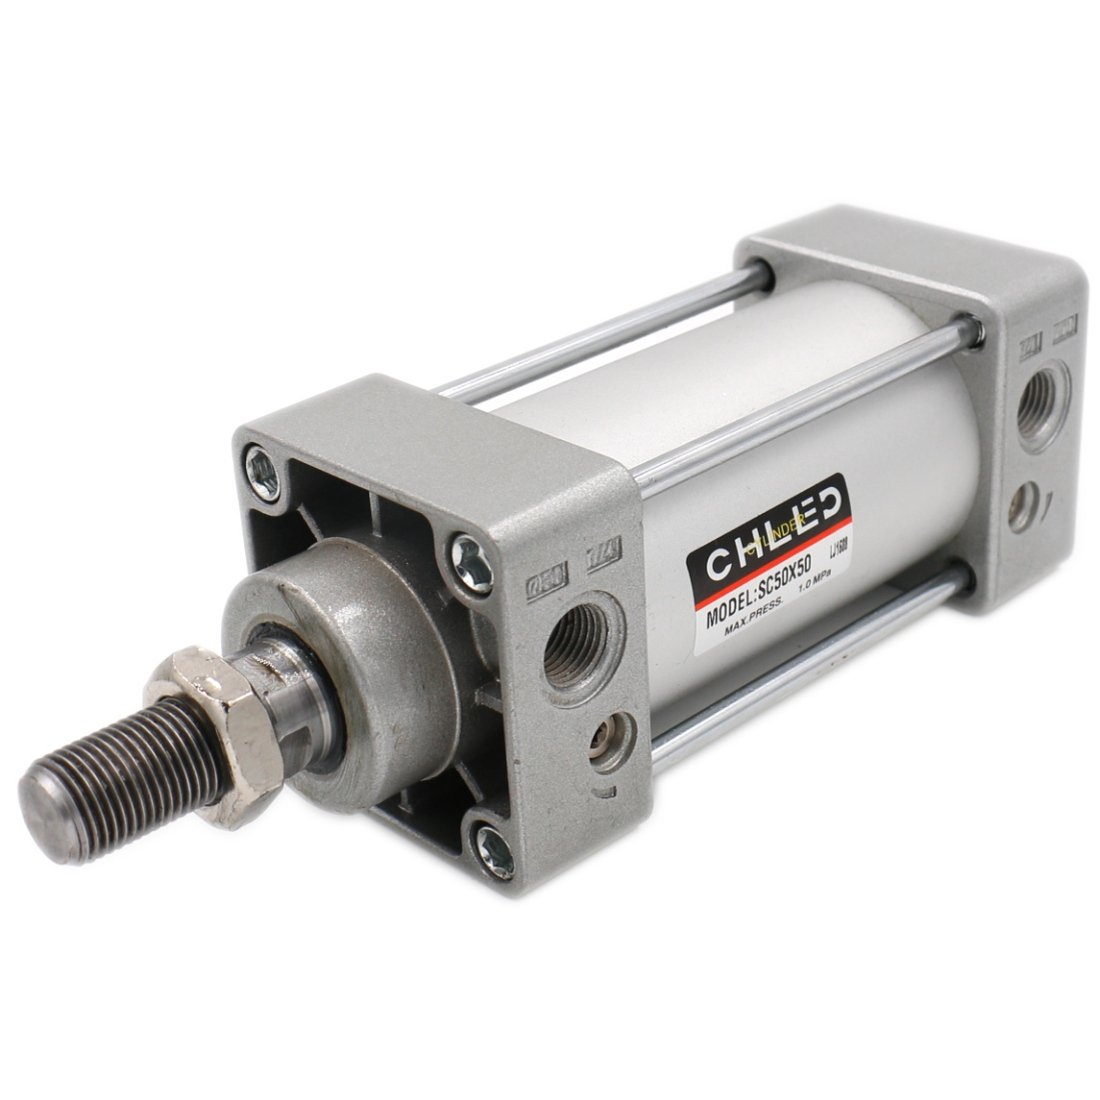 Baomain Pneumatic Air Cylinder SC 50 x 50 PT 1/4, Bore: 50mm, Stroke: 50mm, Screwed Piston Rod Dual Action 1 MPA